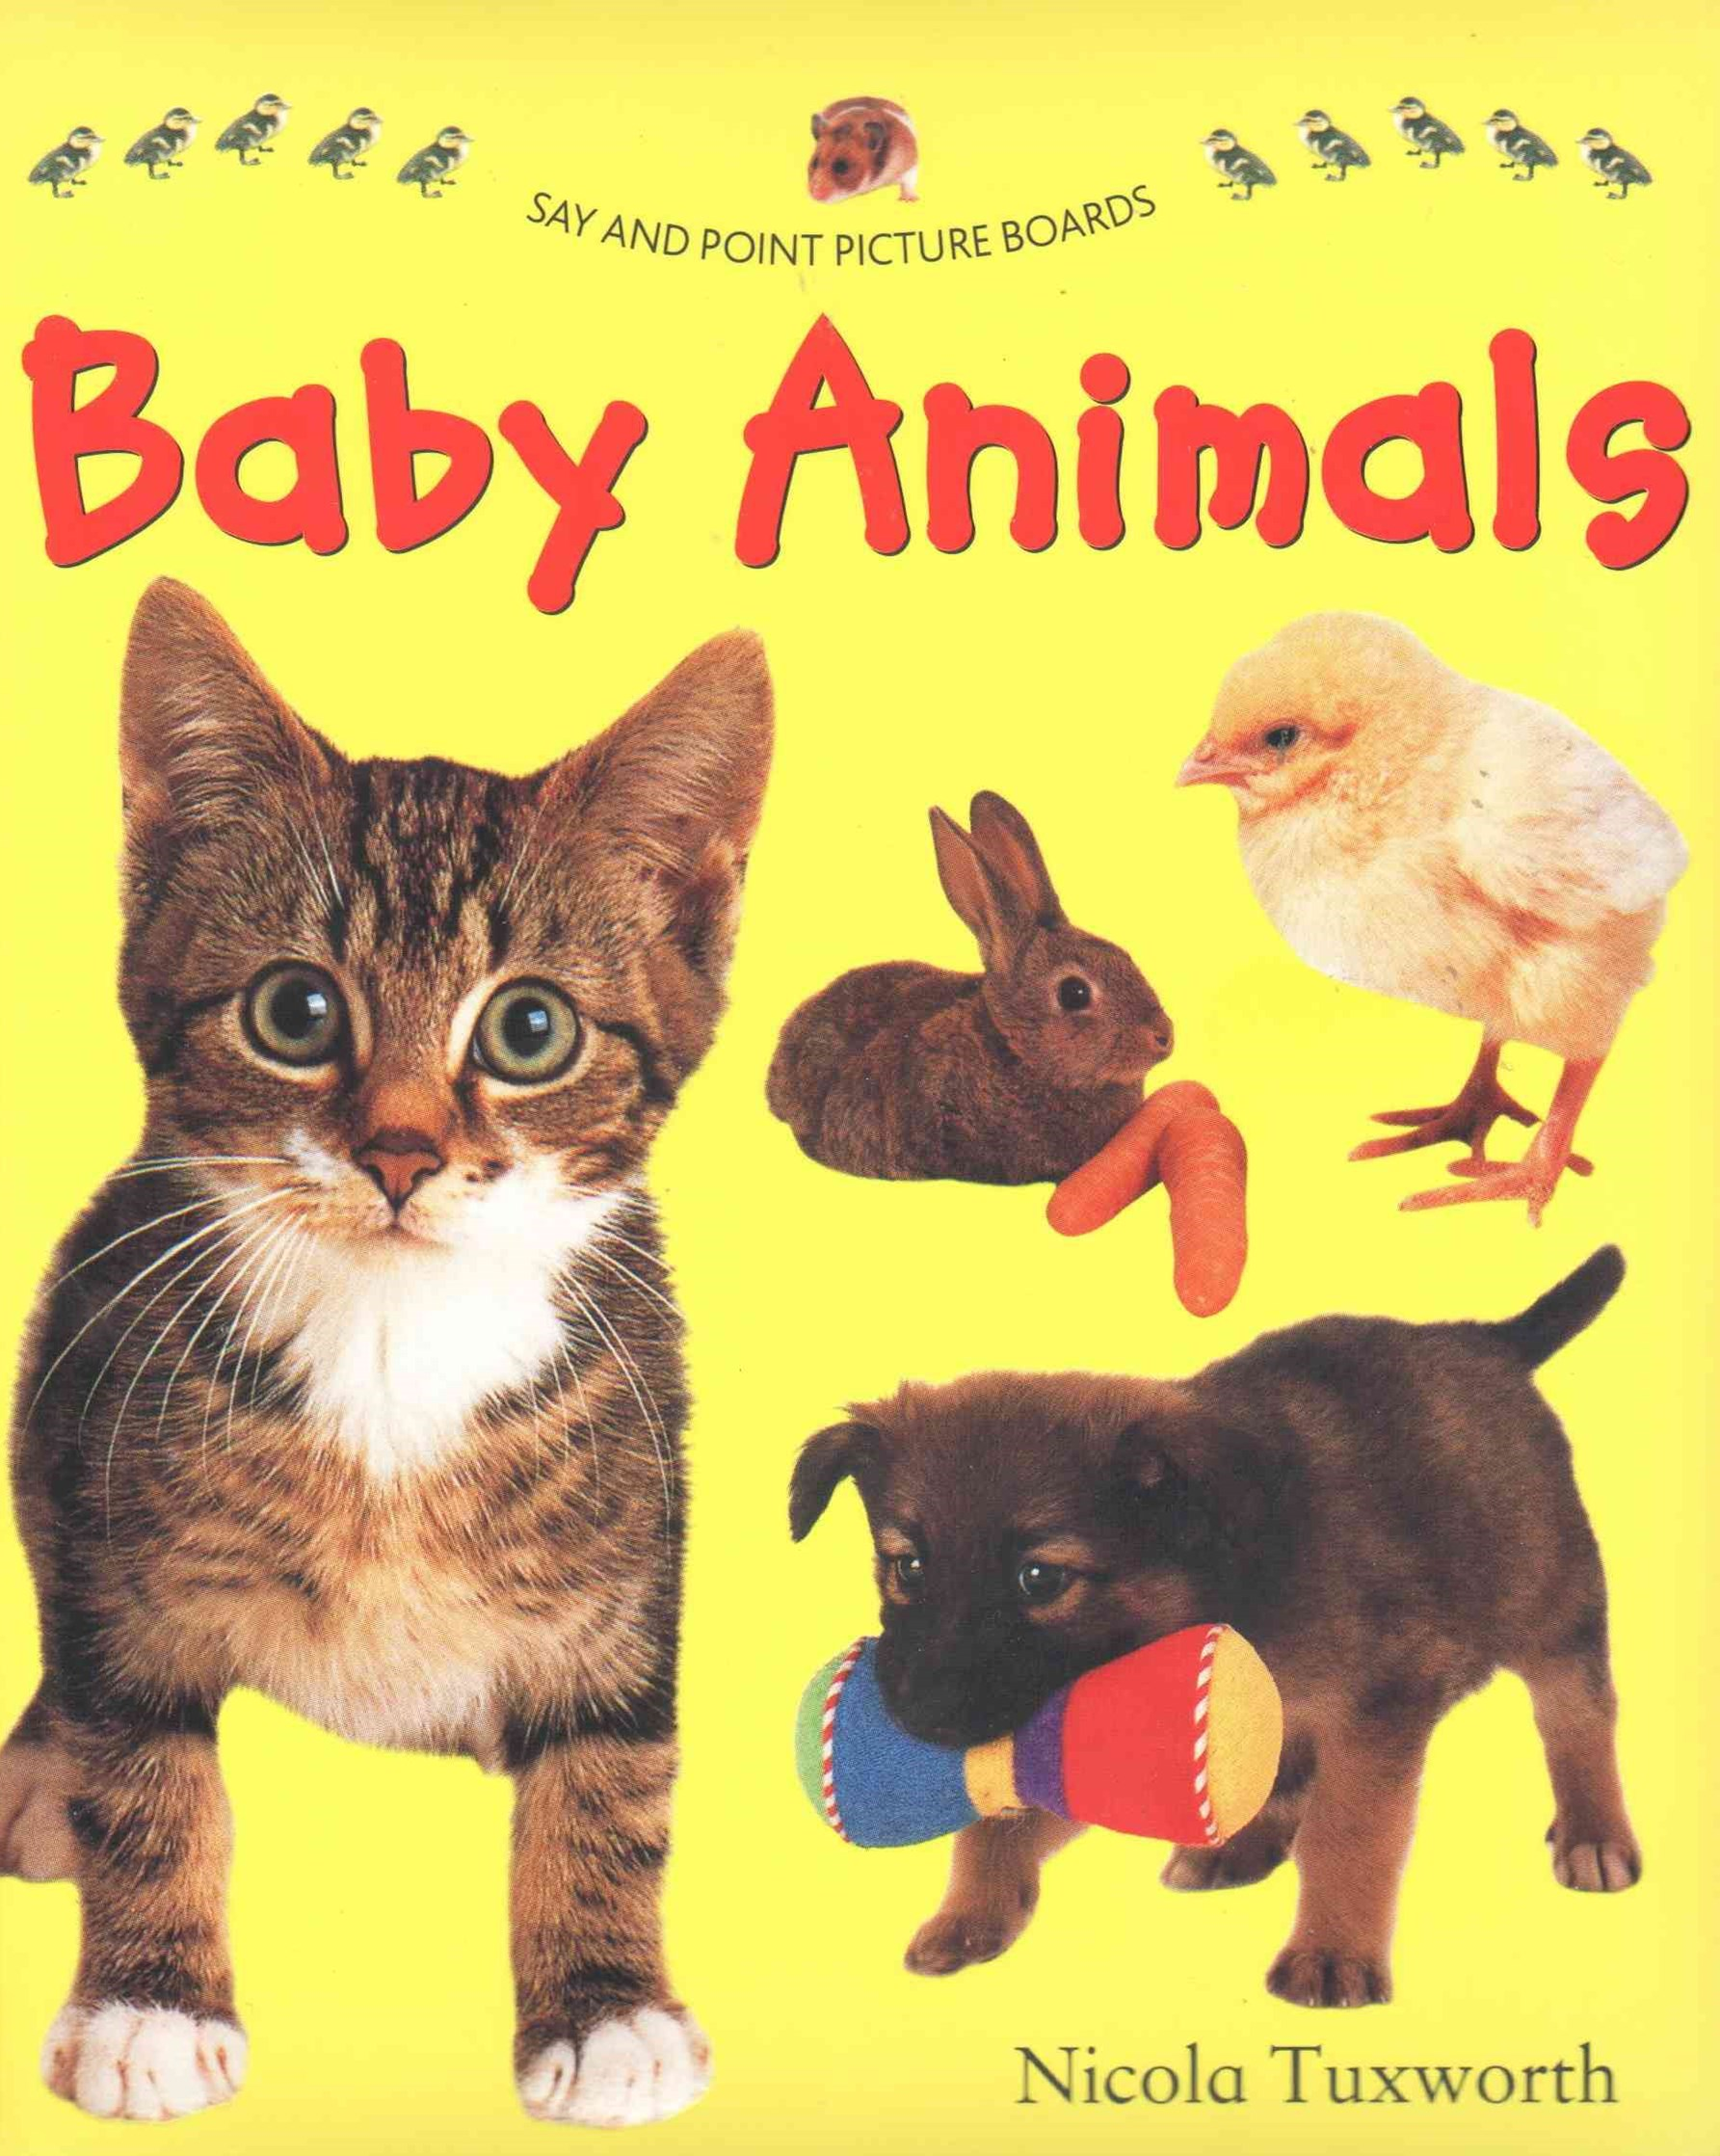 Say and Point Picture Boards: Baby Animals